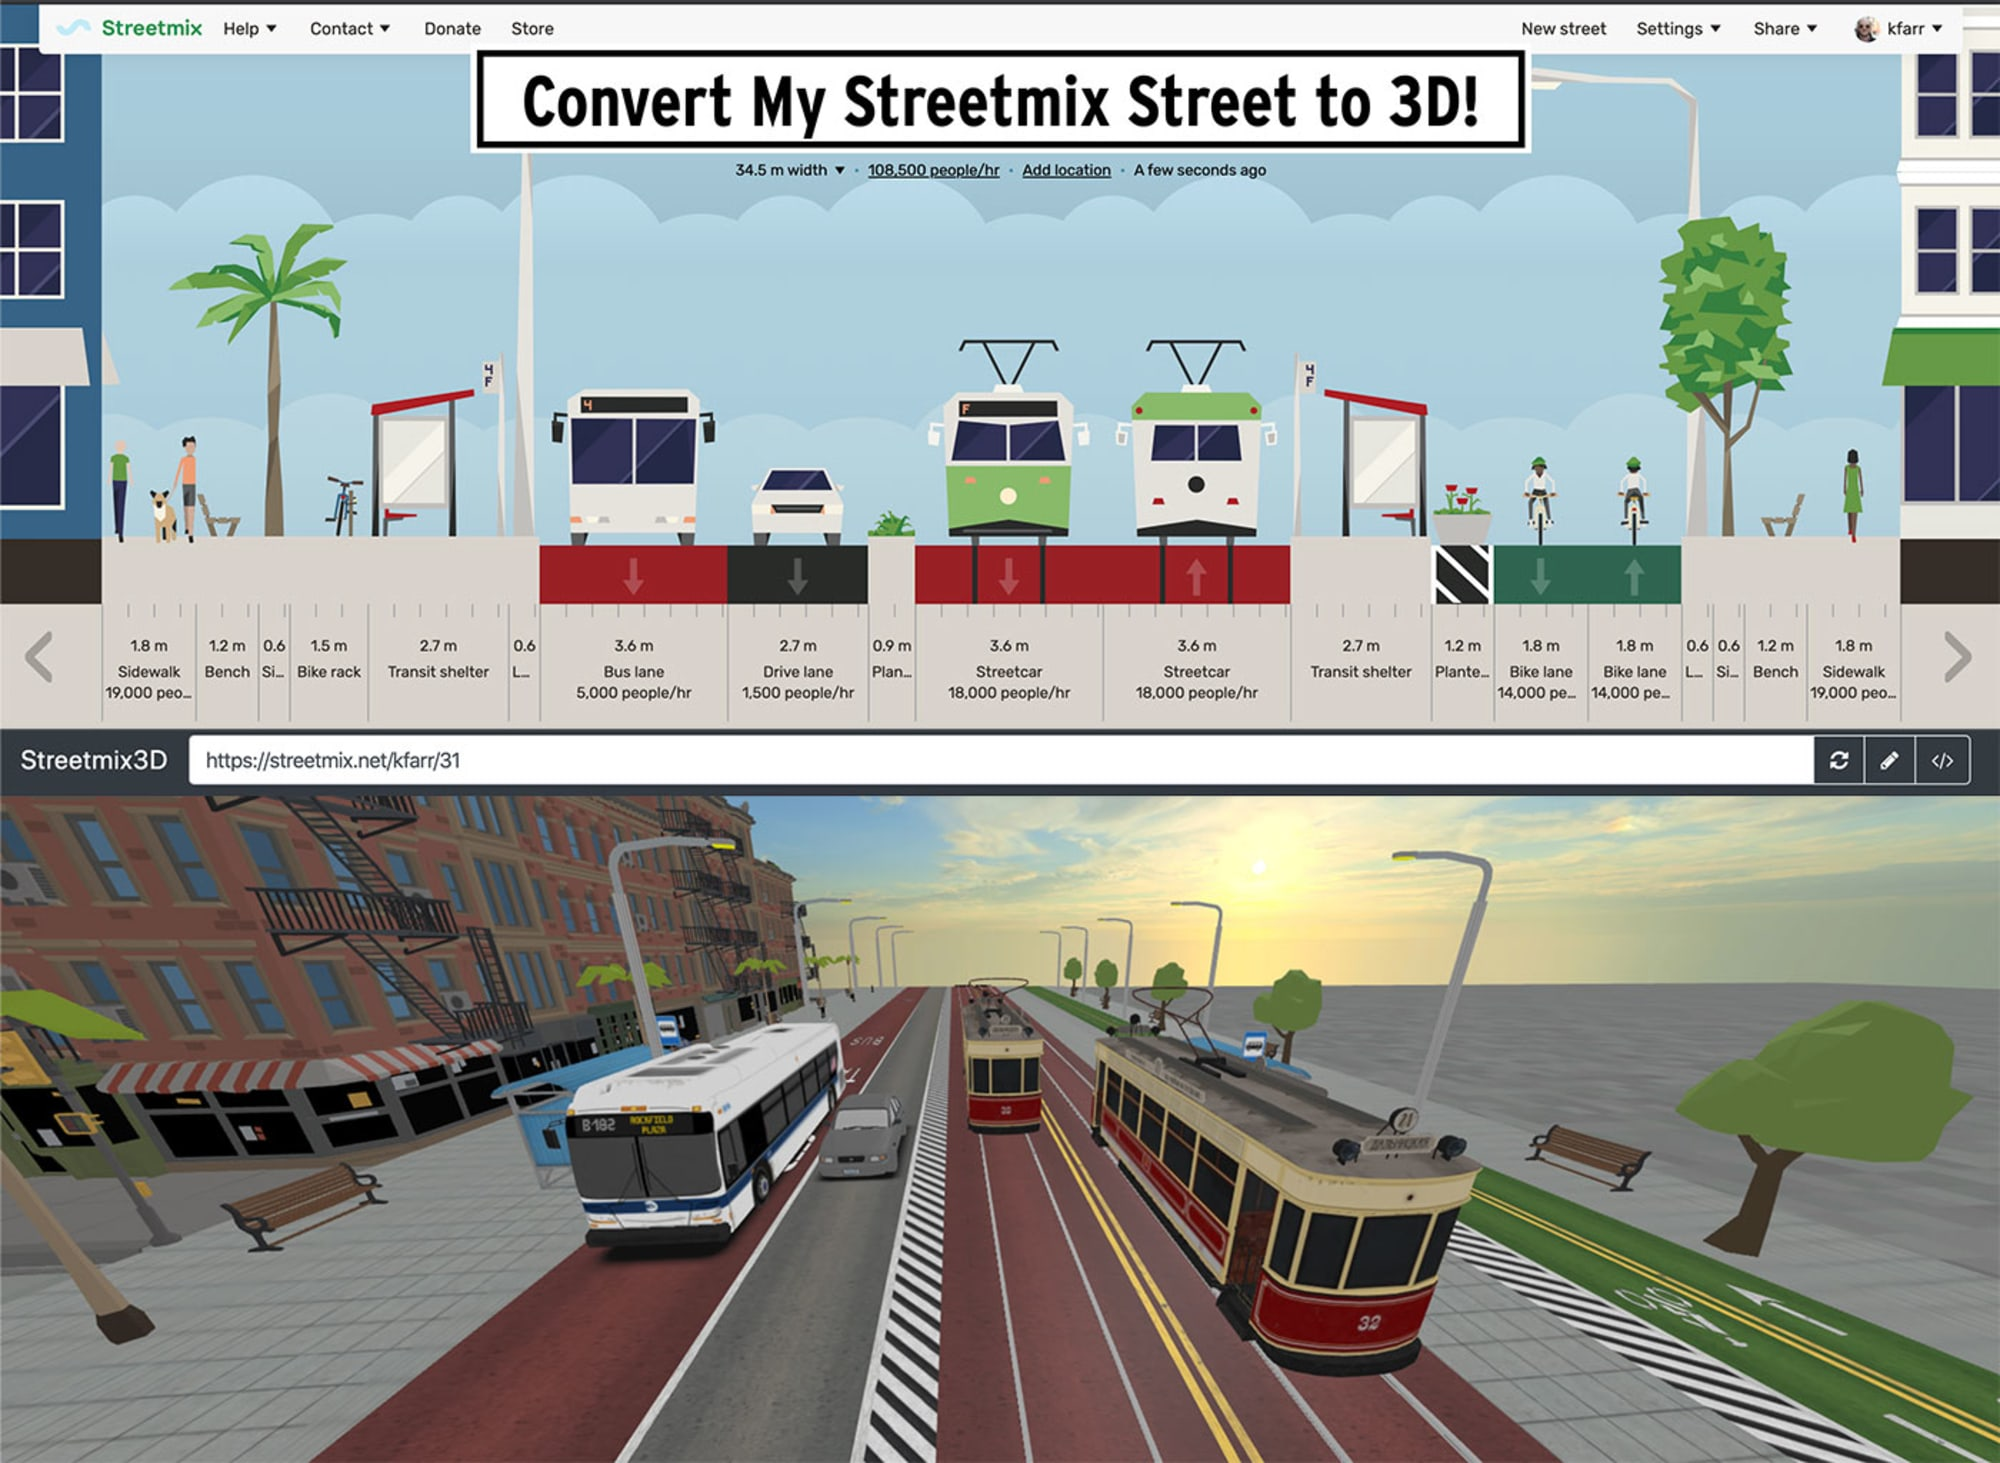 3D Streetmix visualisations